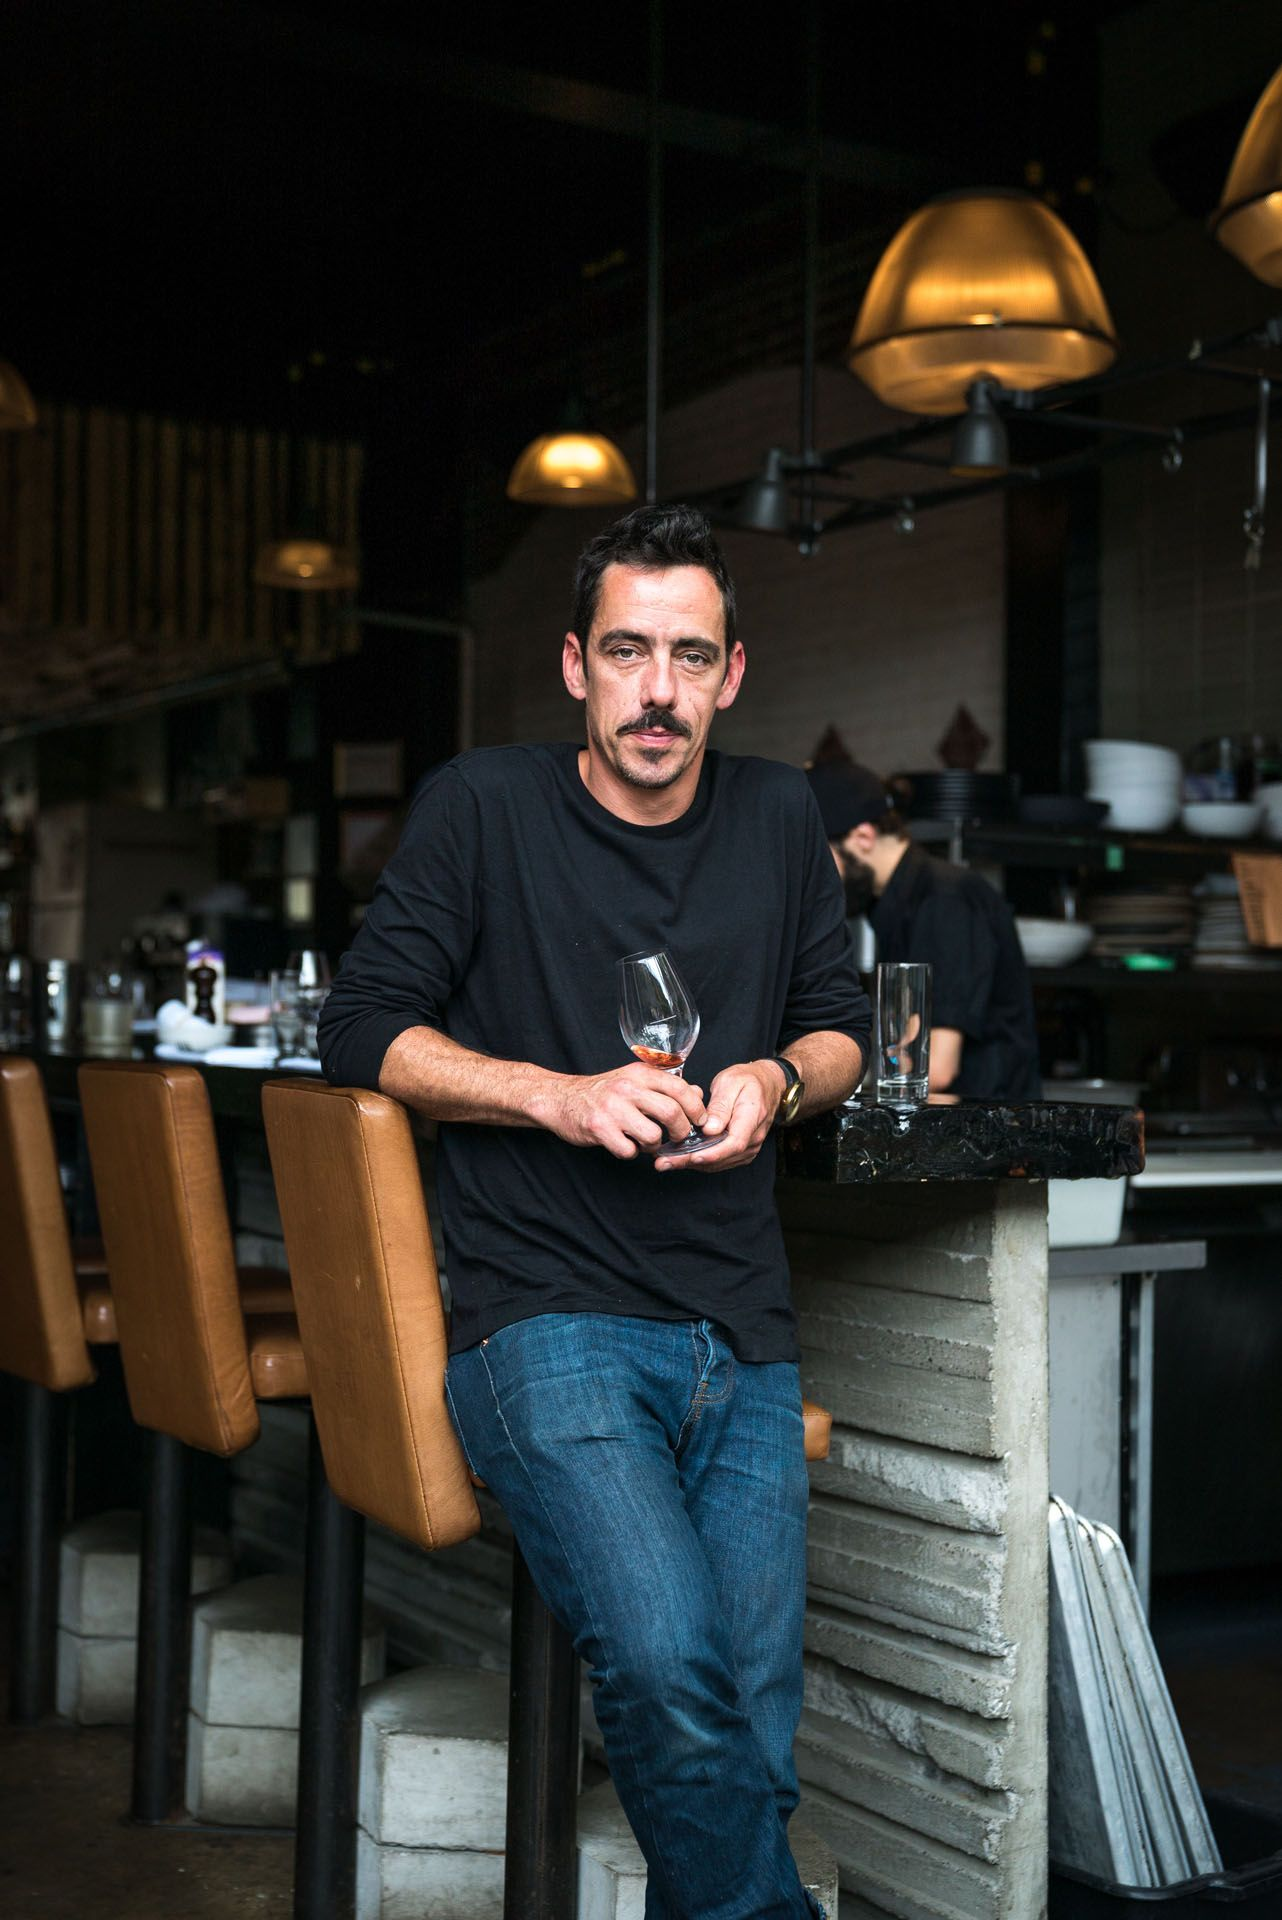 middle aged man standing against bar stool holding almost empty glass of wine by bruno florin for mile-ex mille vies